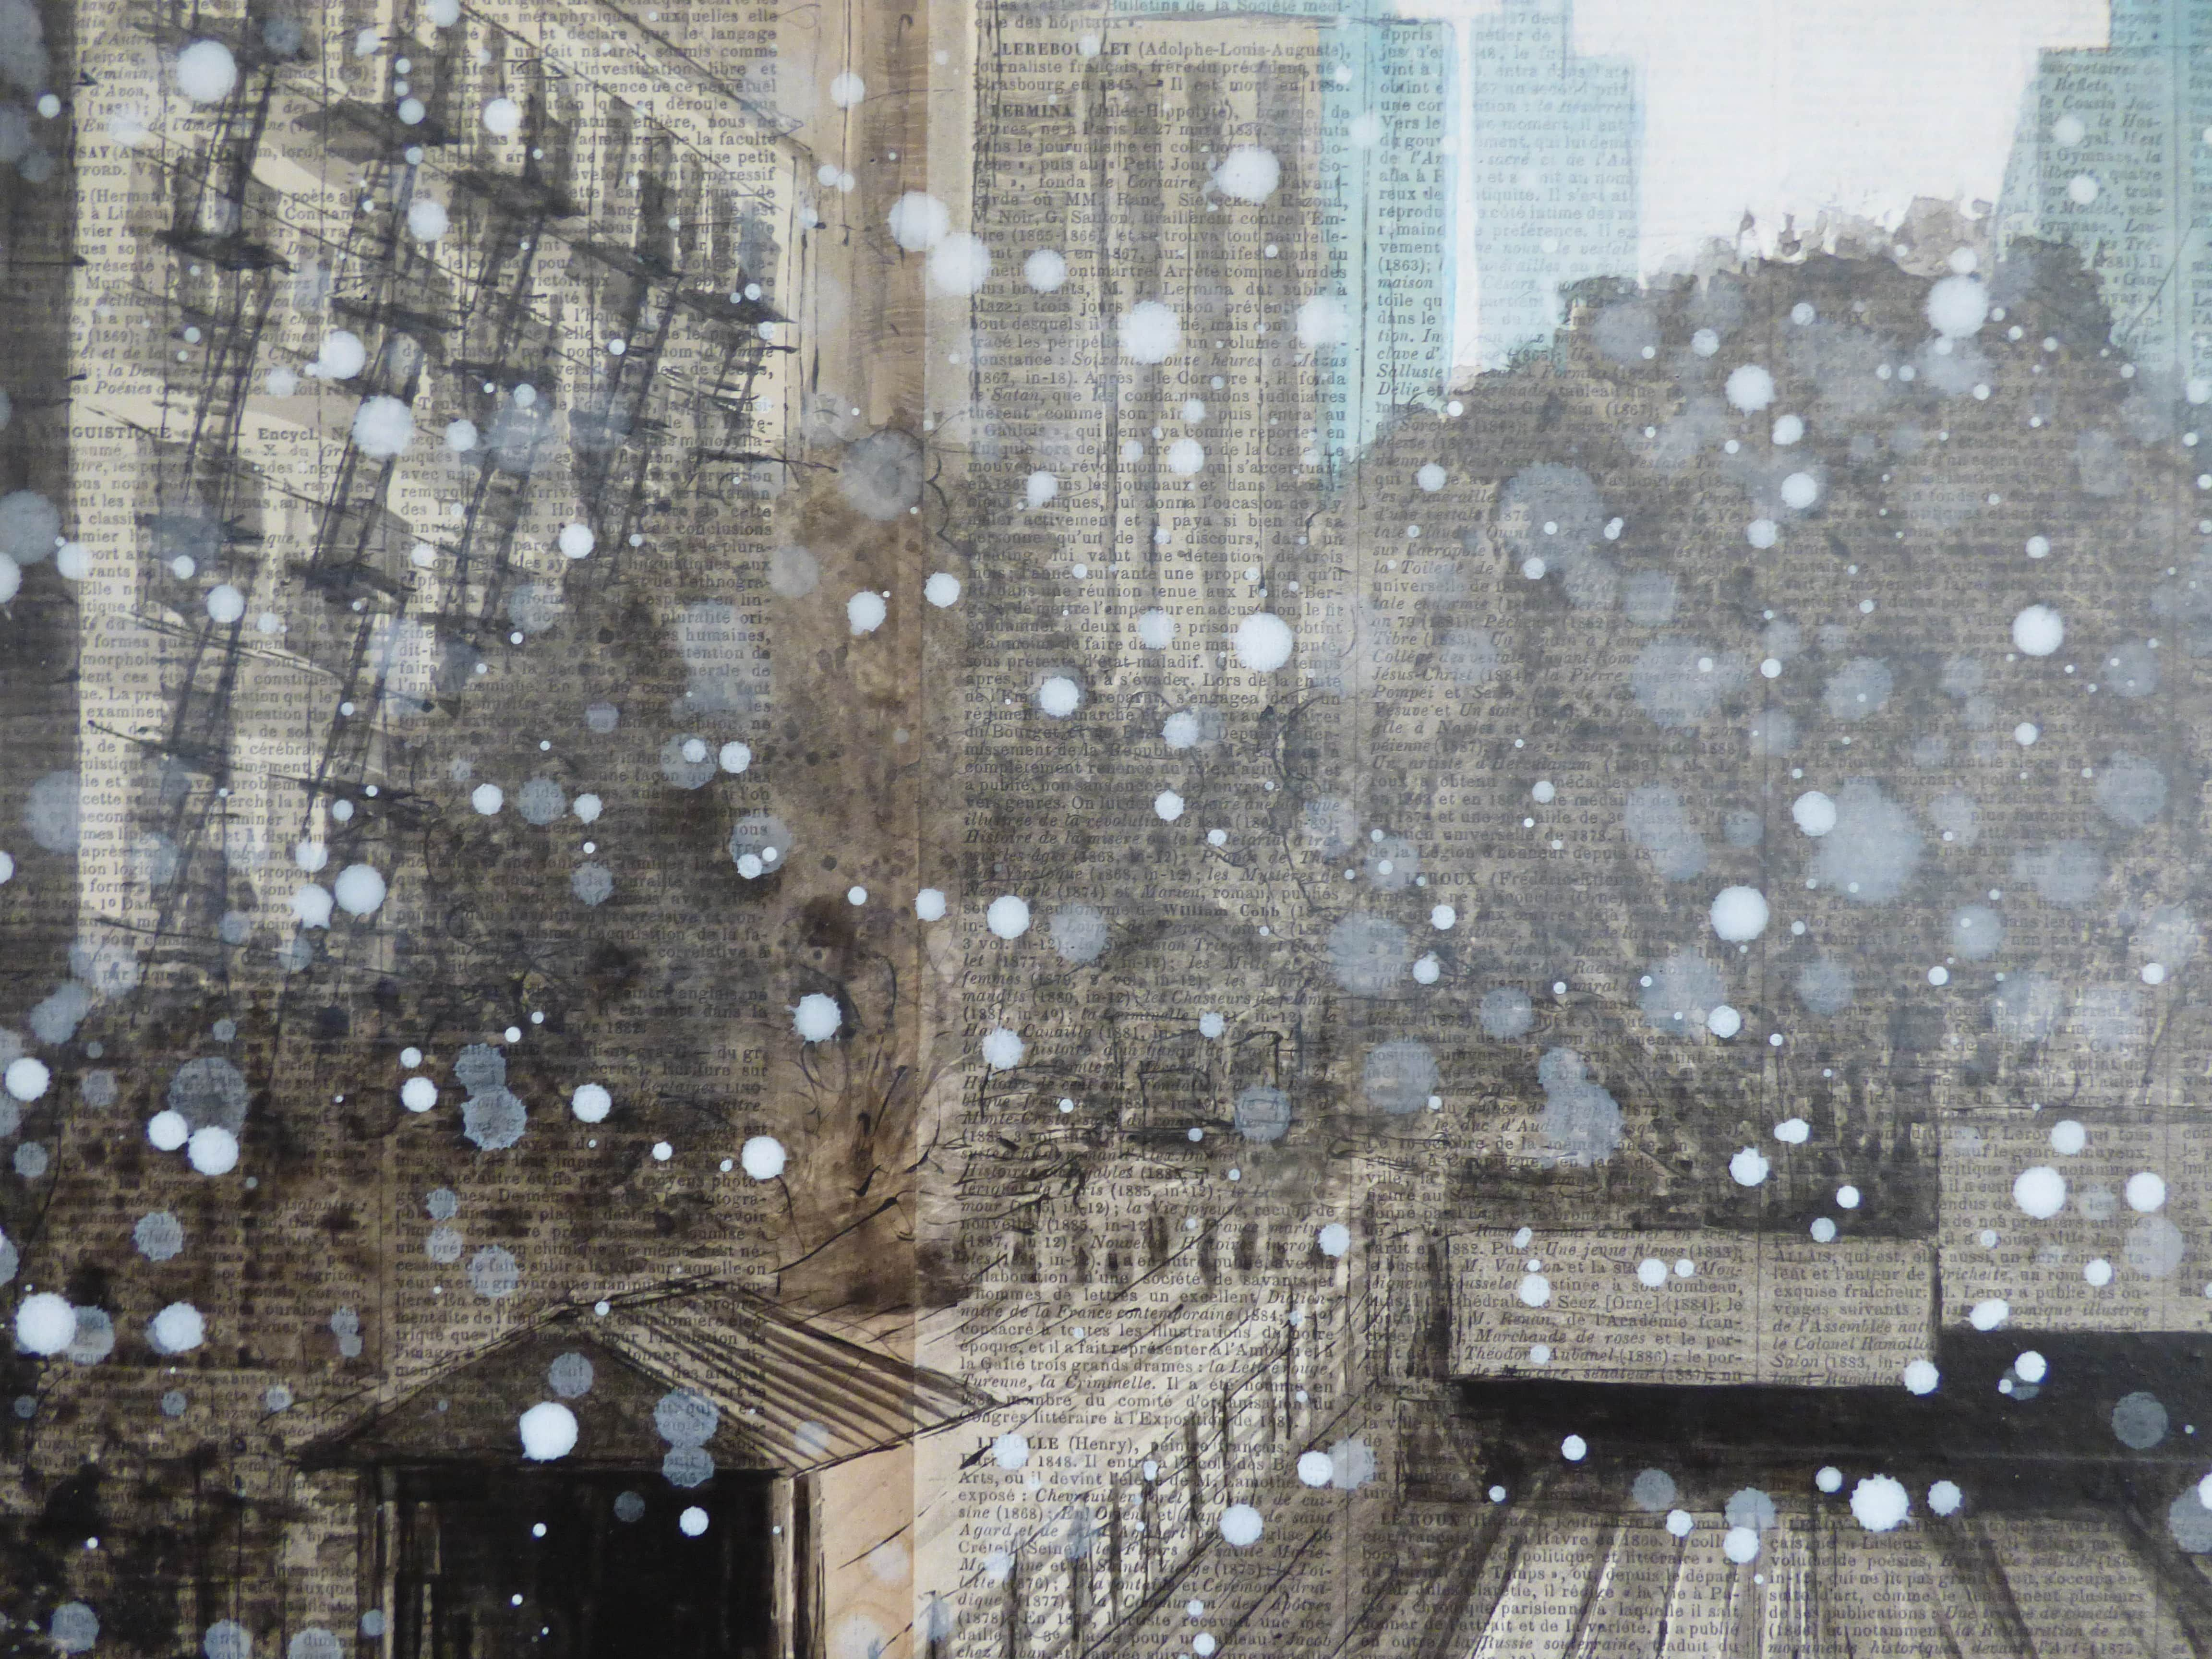 122nd and Broadway,Guillaume Chansarel,Peinture, detail 2